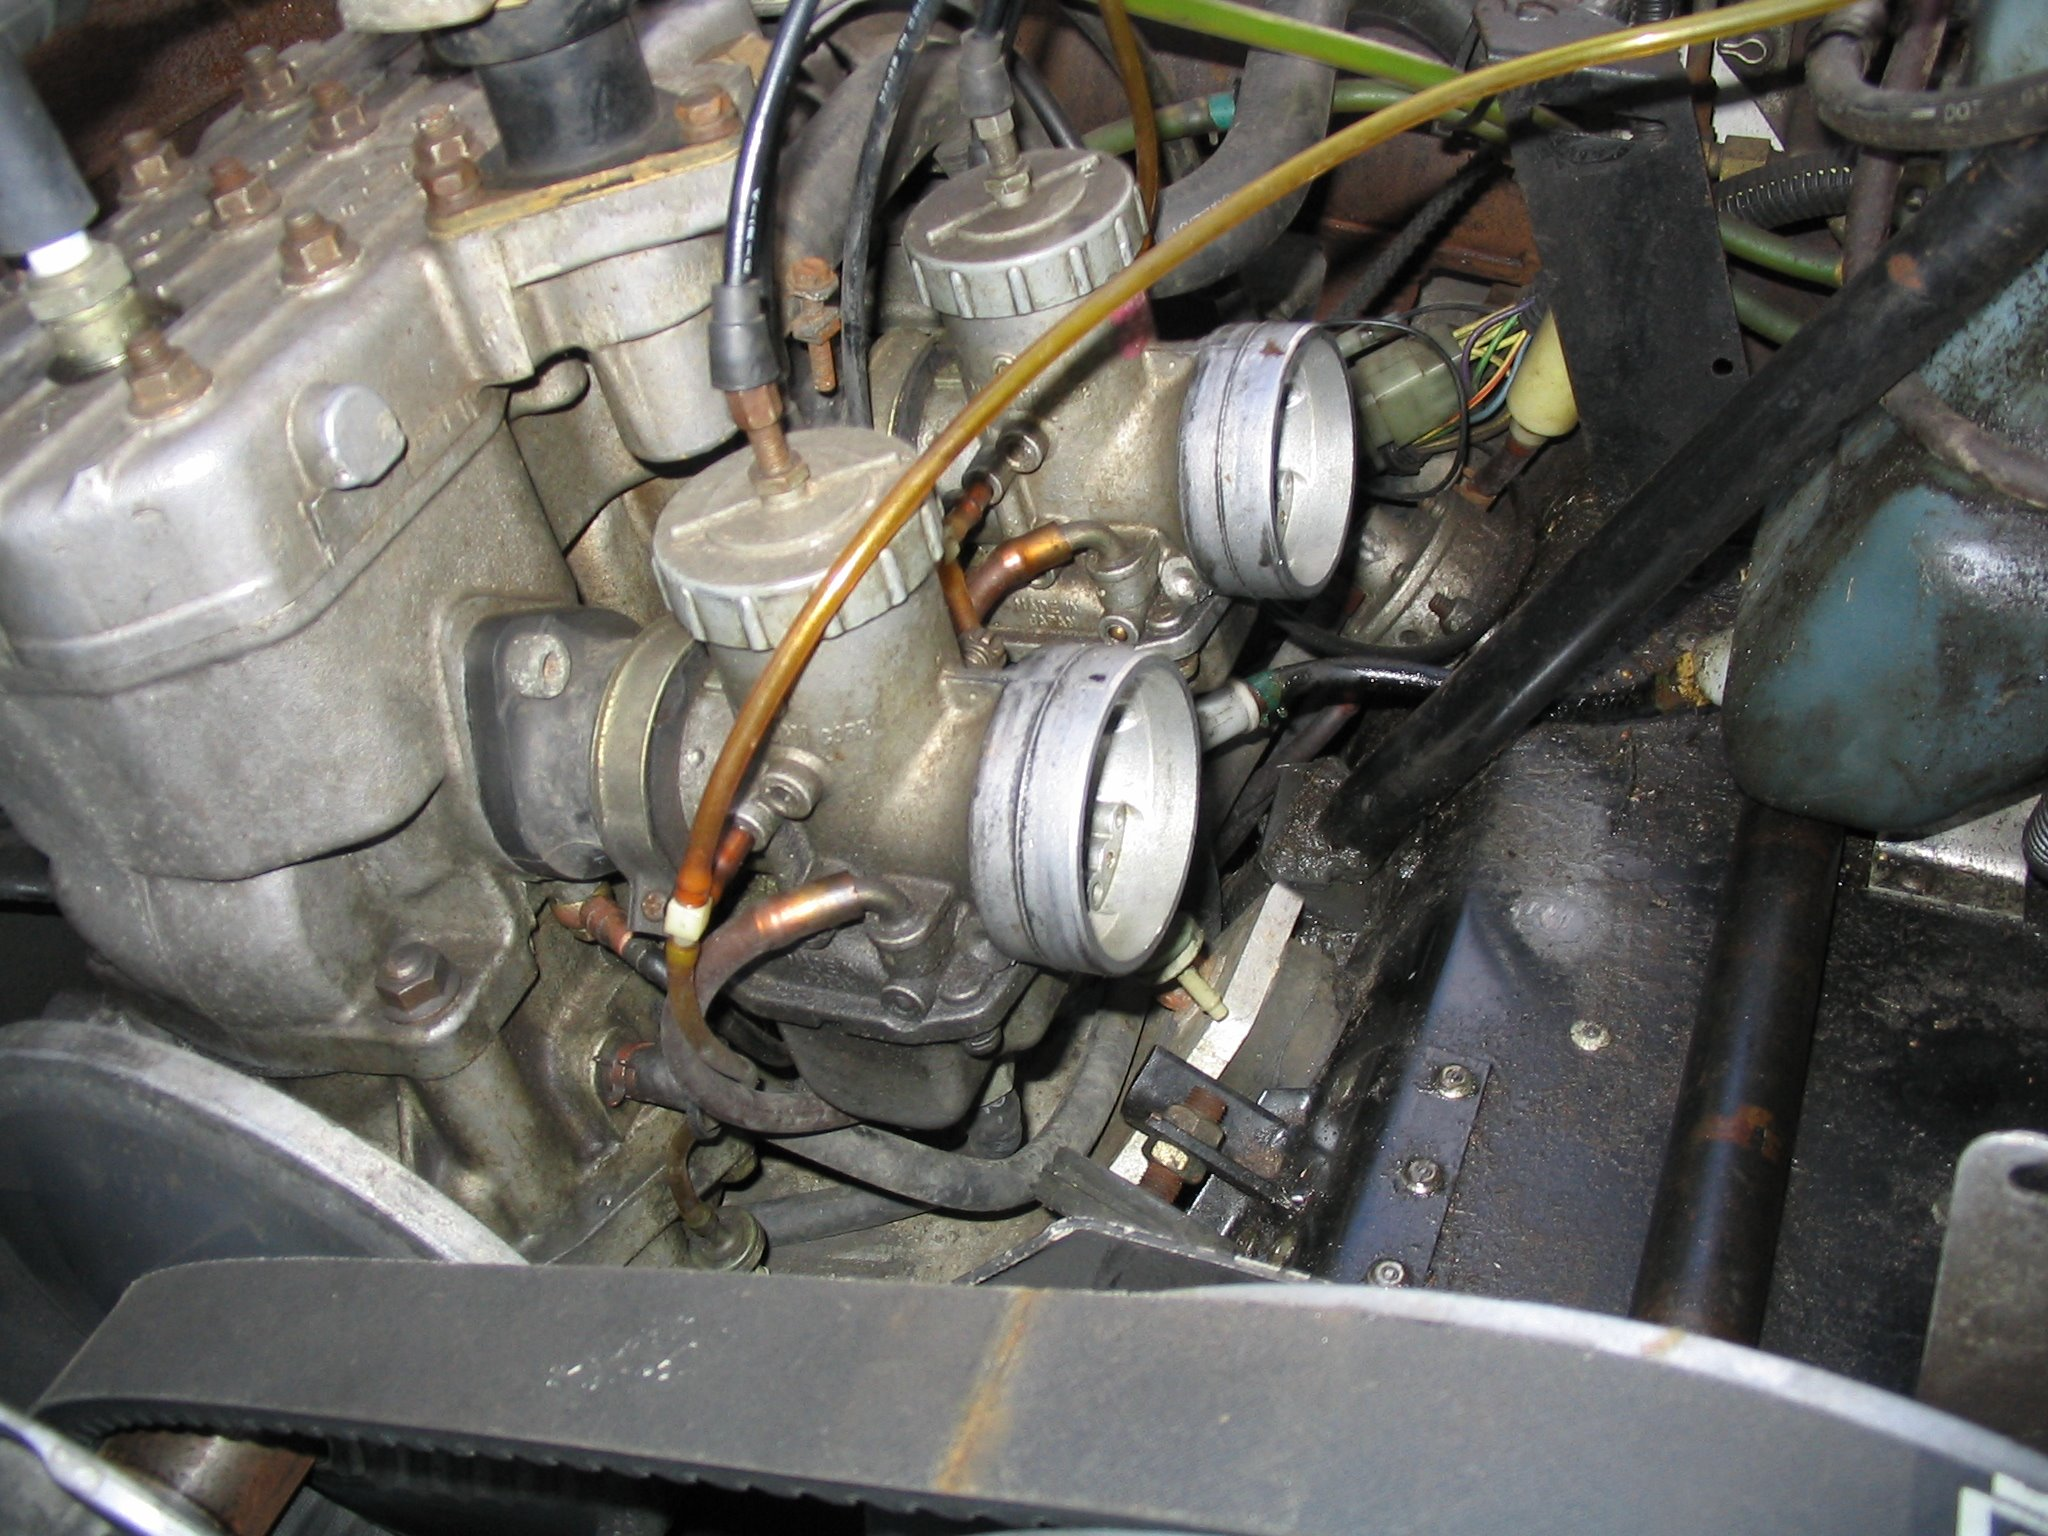 Disassembly And Cleaning Of A Mikuni Round Slide Carburetor